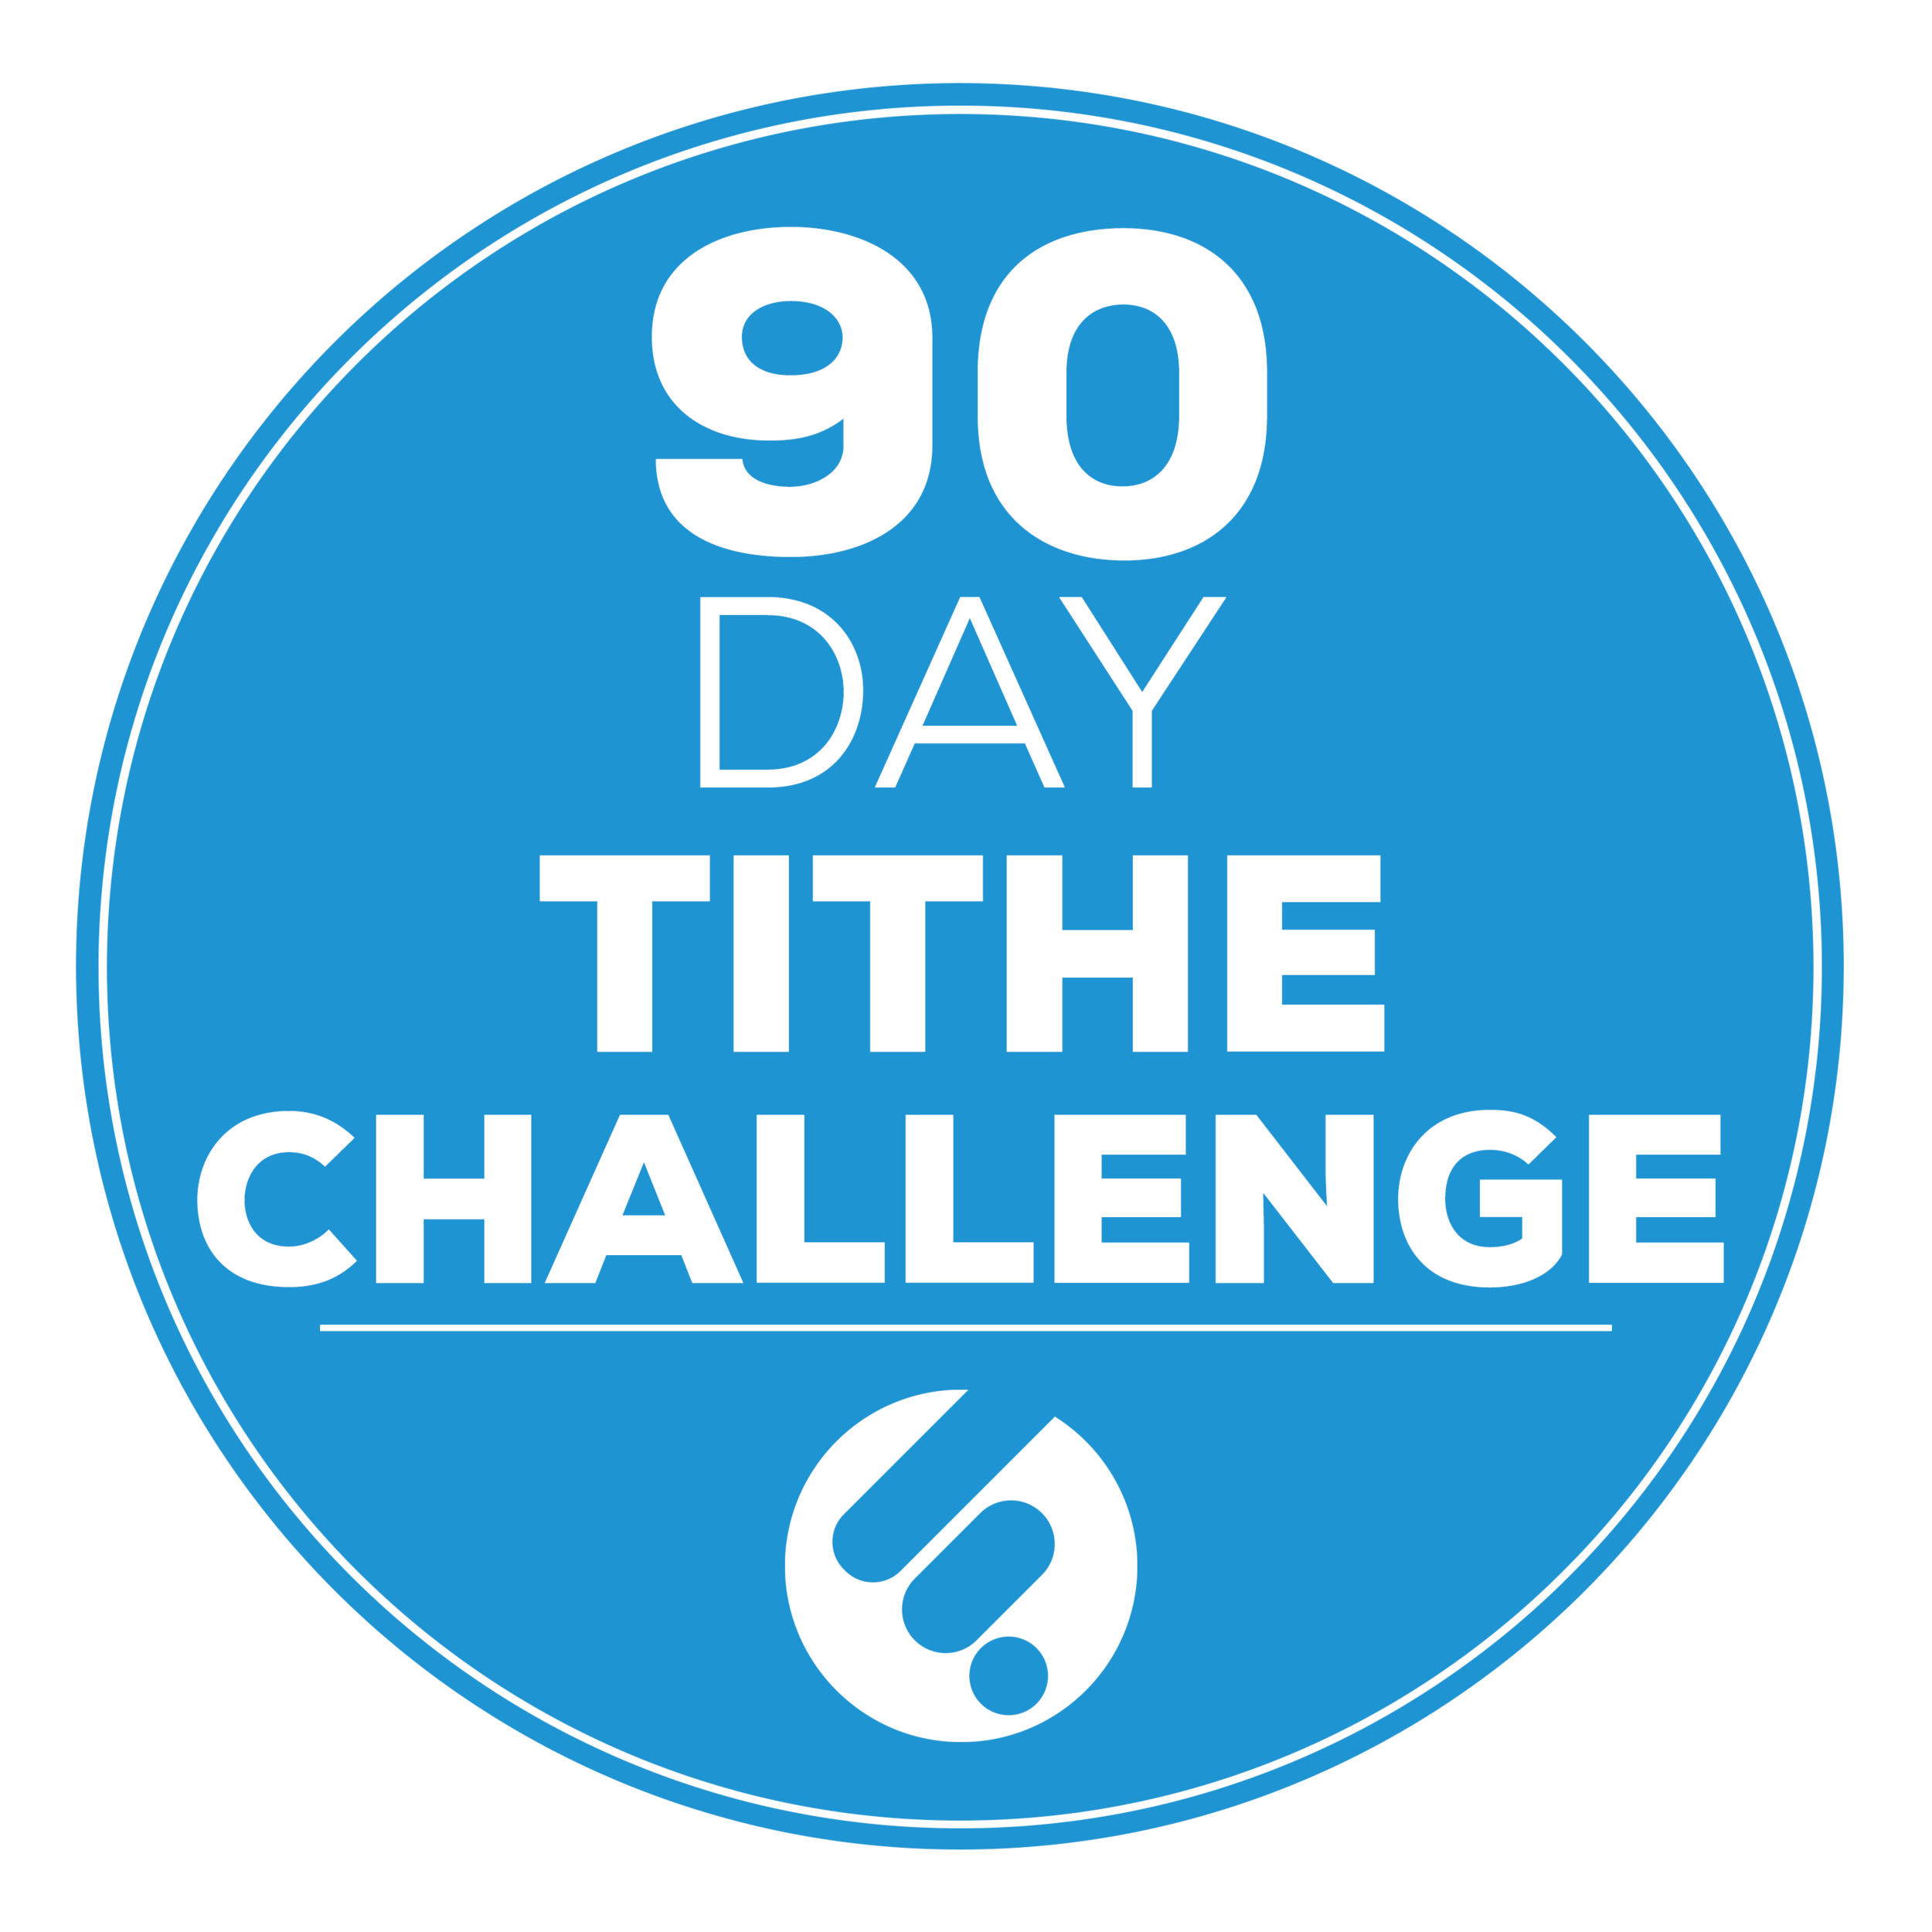 90 Day tithe Challenge logo.png